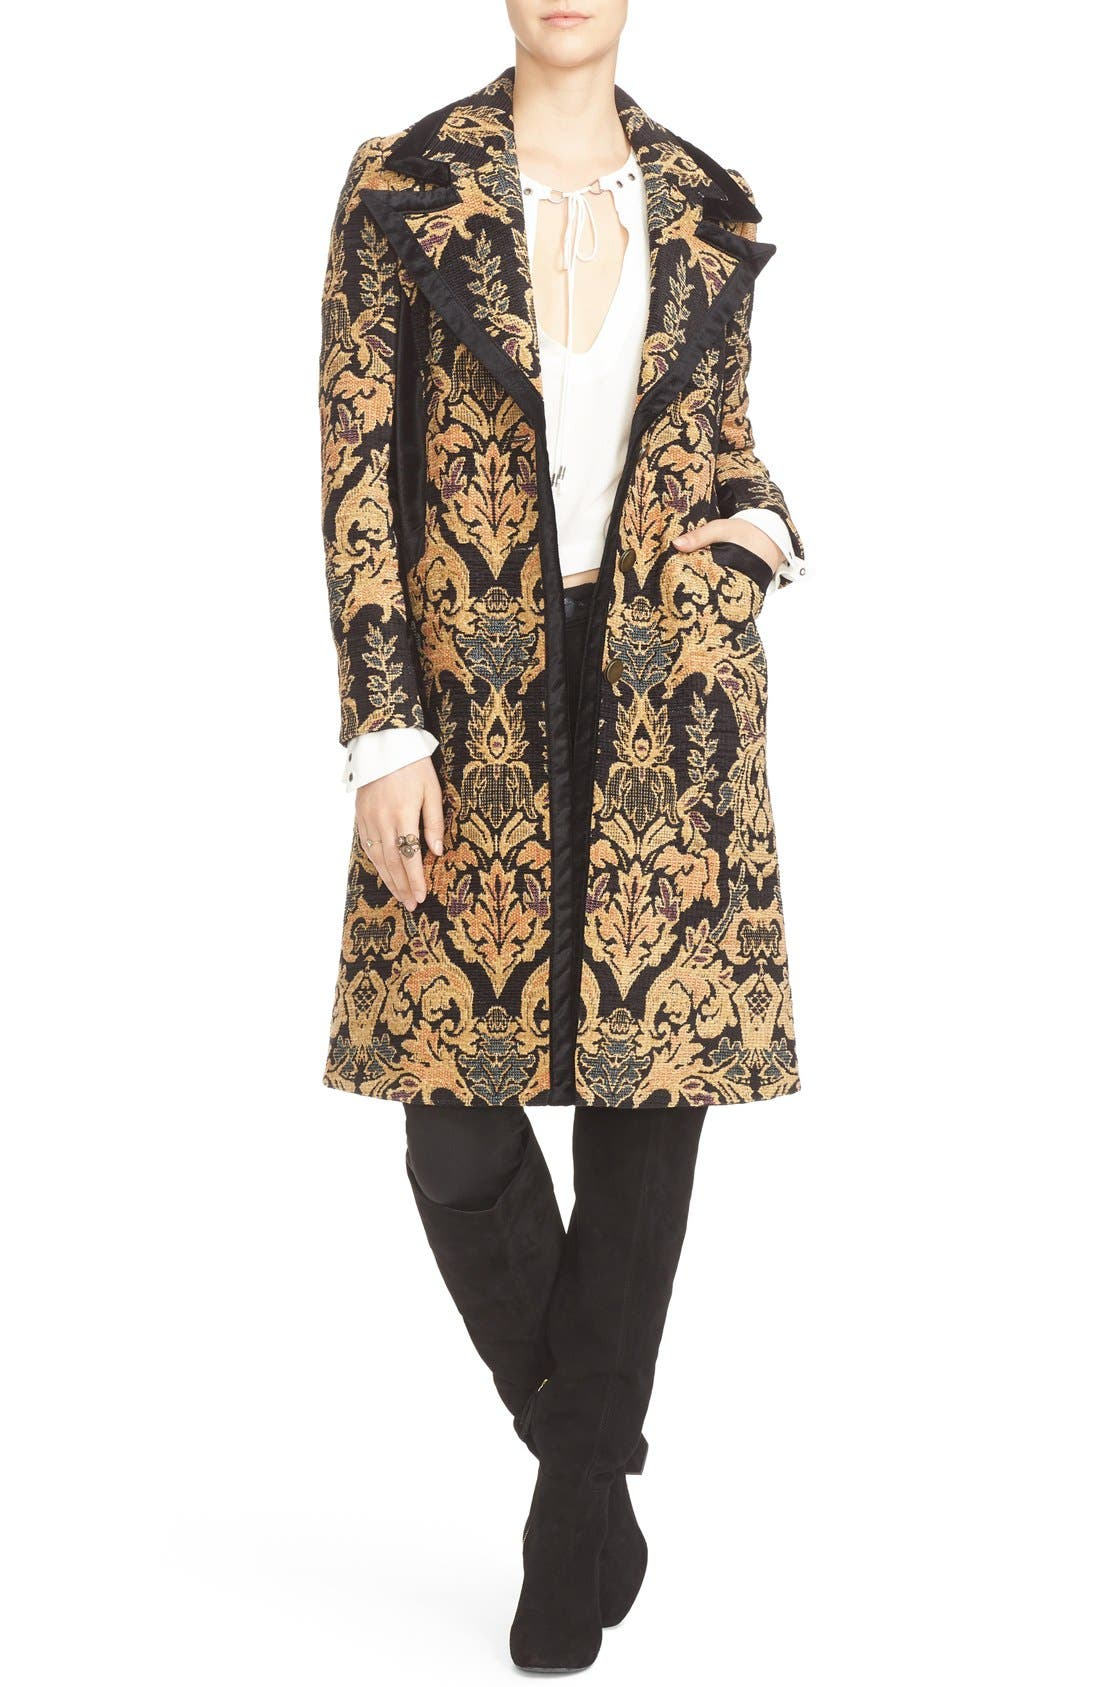 FREE PEOPLE,                             Jacquard Coat,                             Alternate thumbnail 5, color,                             001